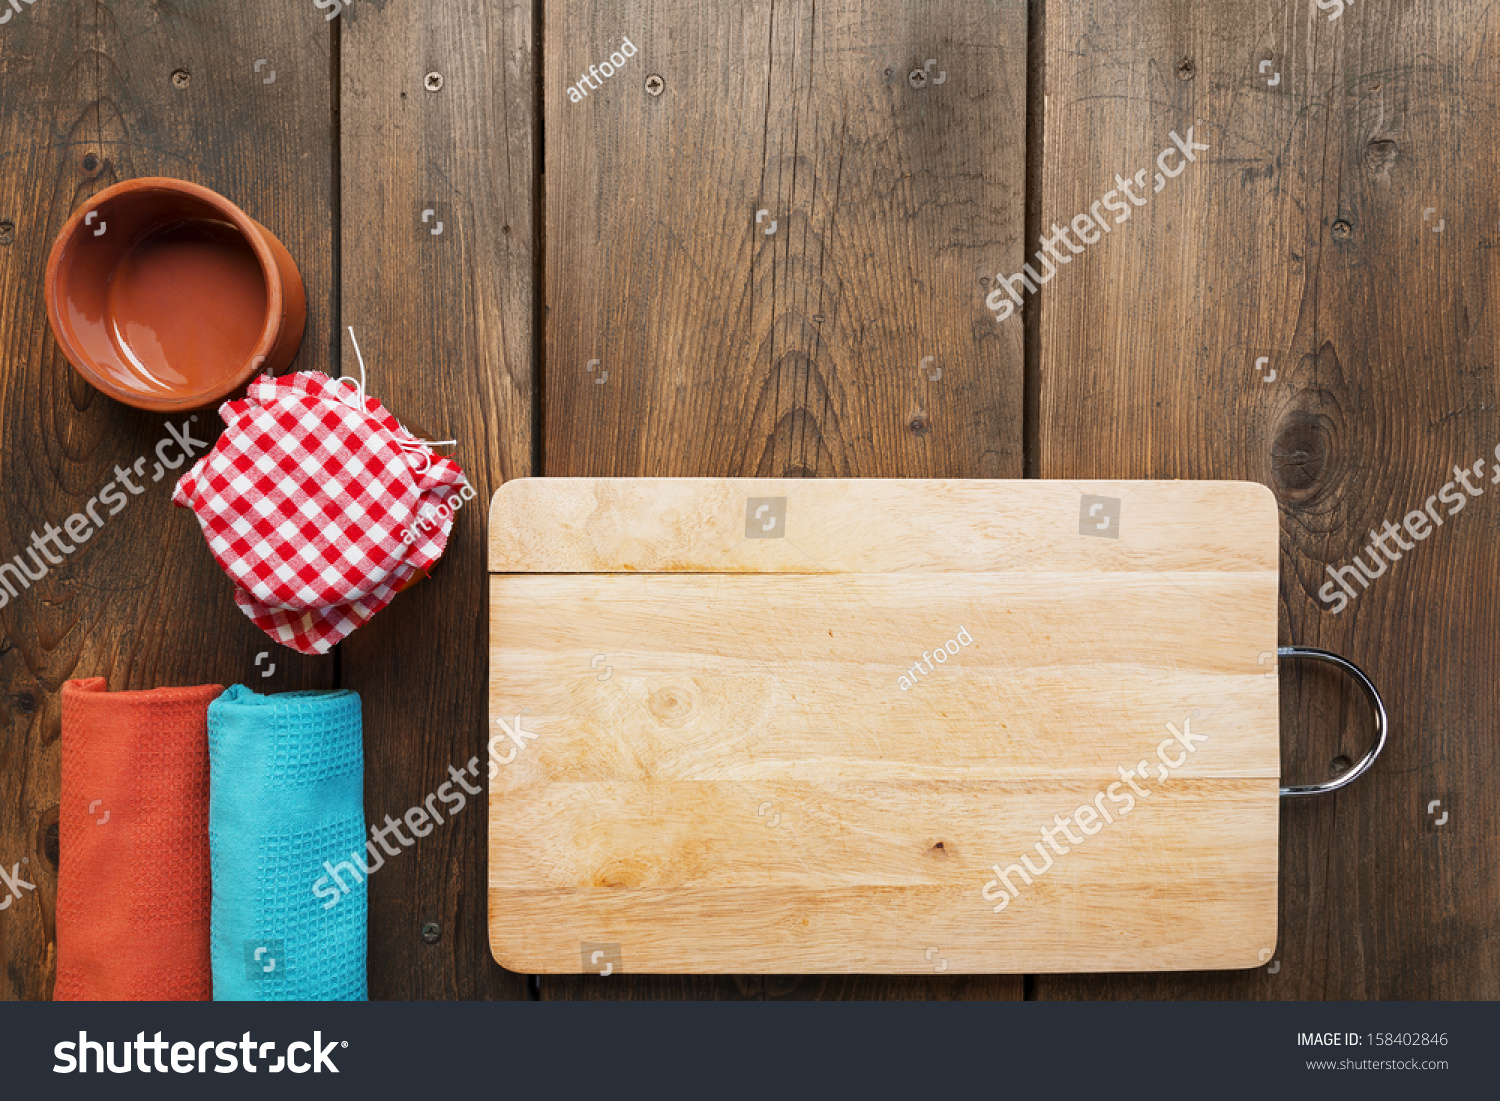 Dinner table background - Kitchen Table Background Kitchen Tablecookbook Background An Old Wooden Kitchen Table Plank Bowl